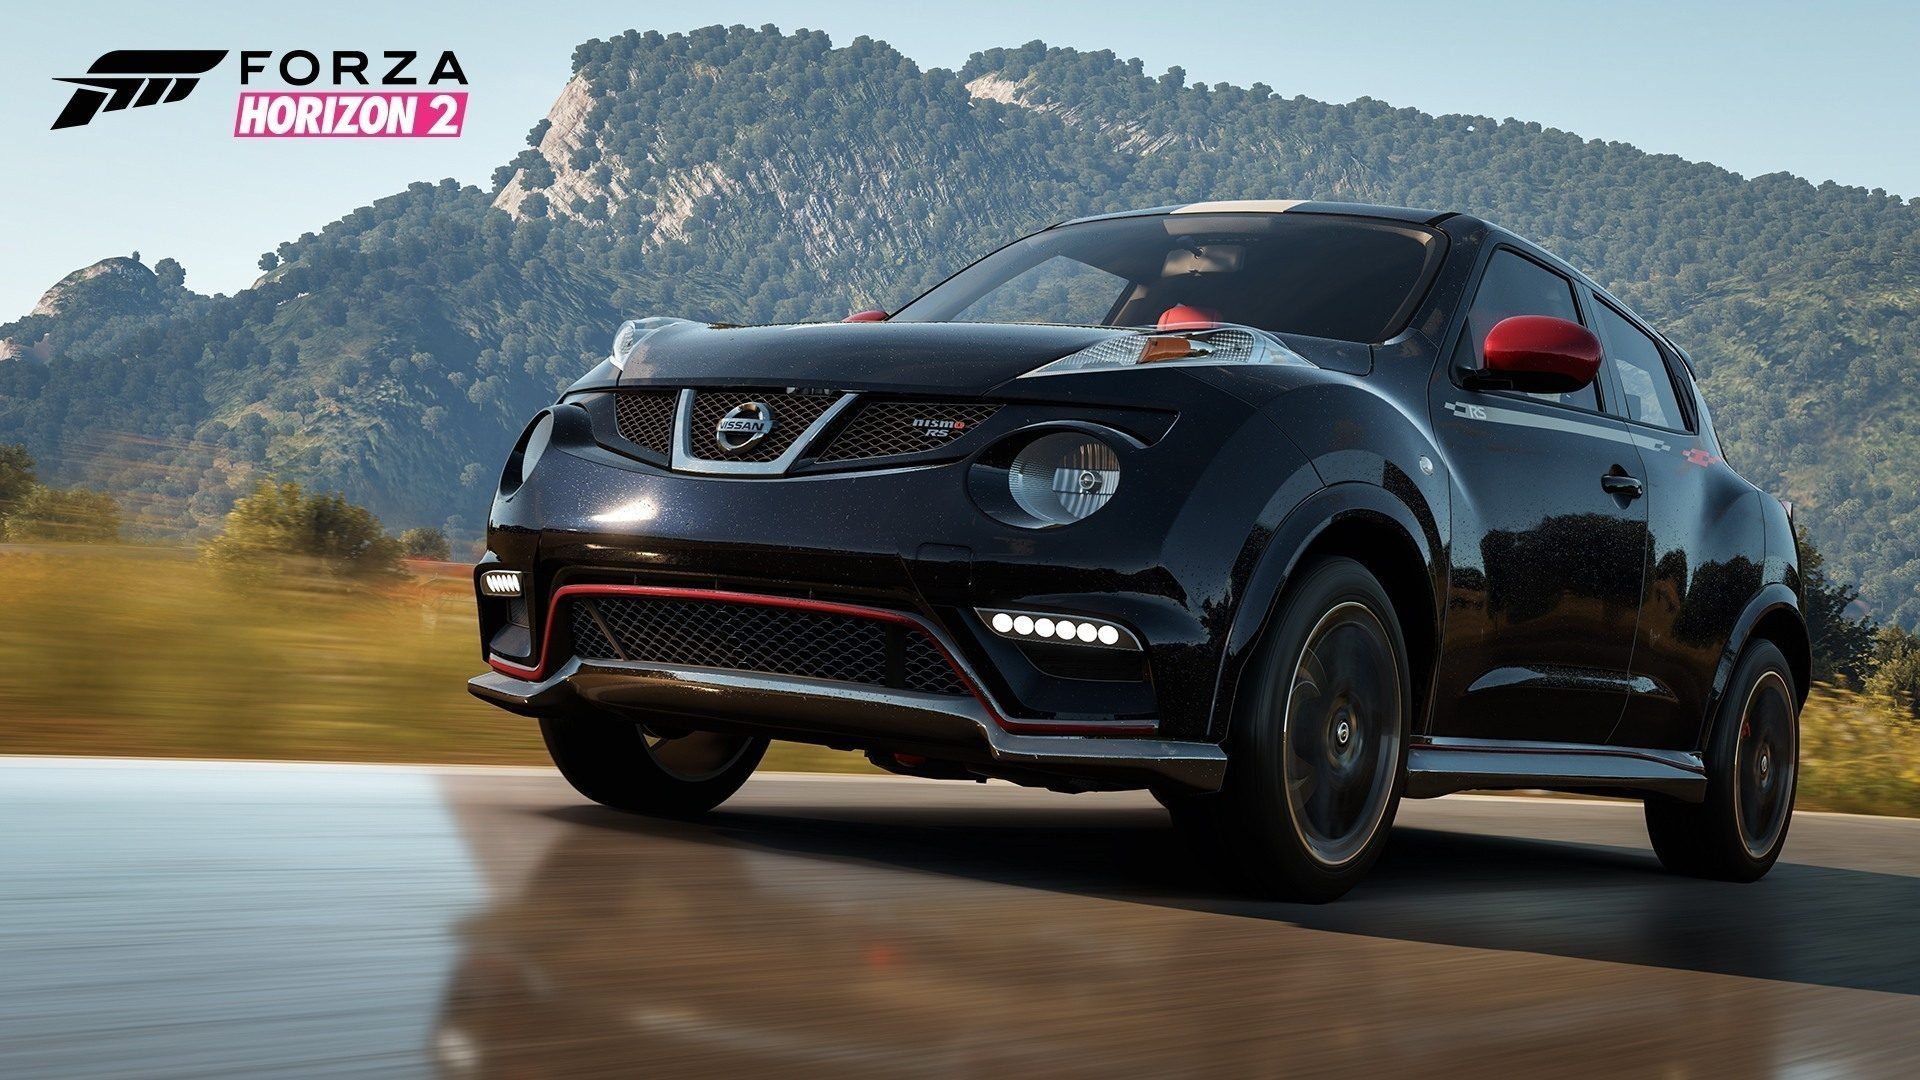 forza horizon 2 39 ign car pack 39 available tomorrow. Black Bedroom Furniture Sets. Home Design Ideas